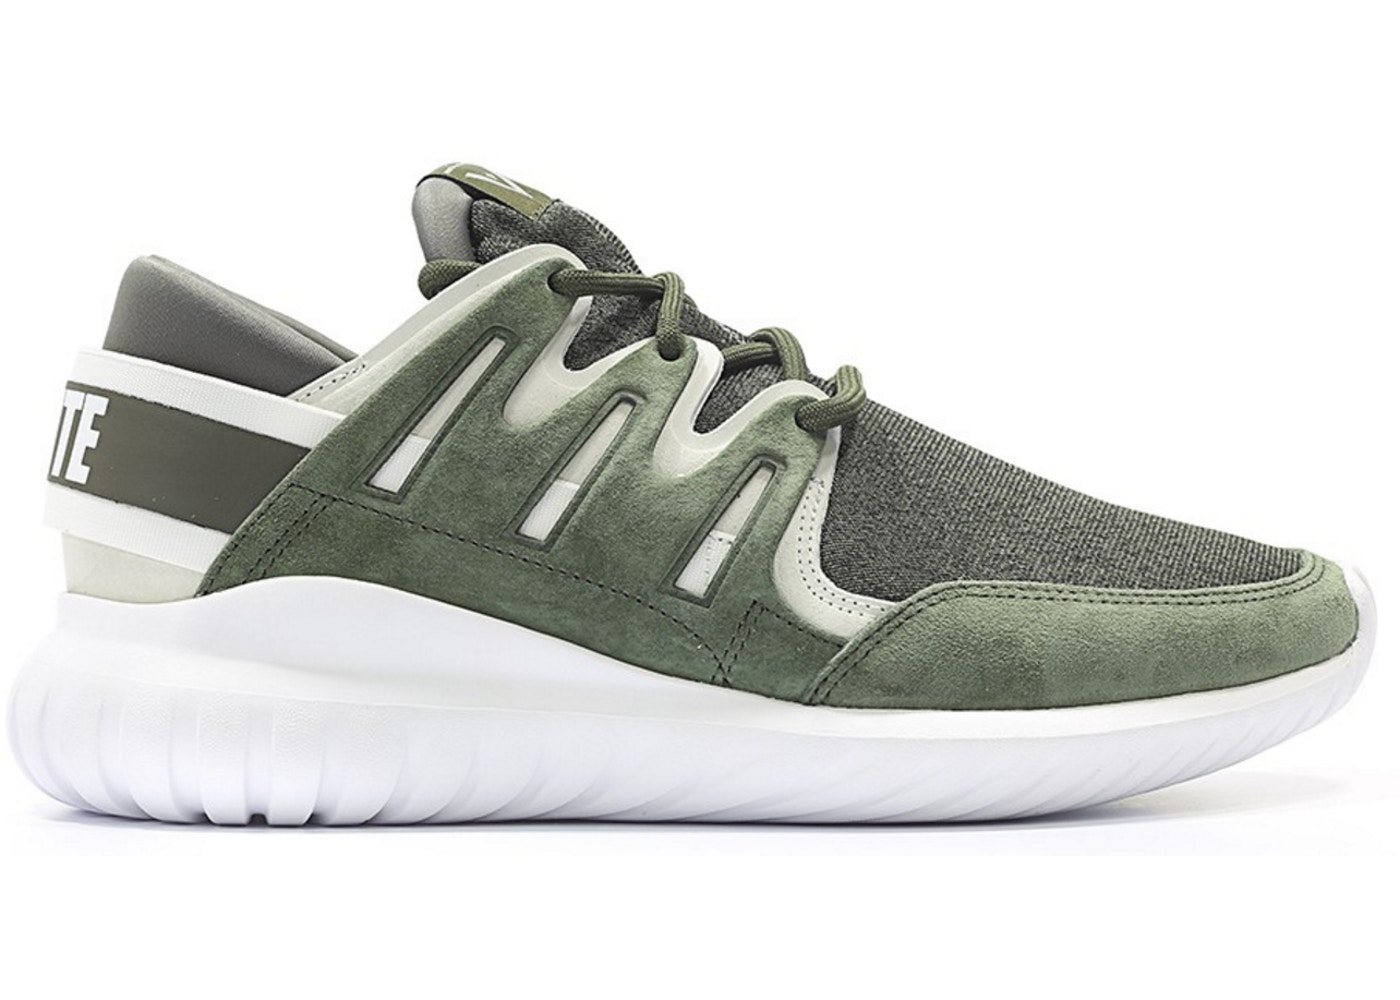 fe8d2d756 Sell. or Ask. Size --. View All Bids. adidas Tubular Nova White  Mountaineering